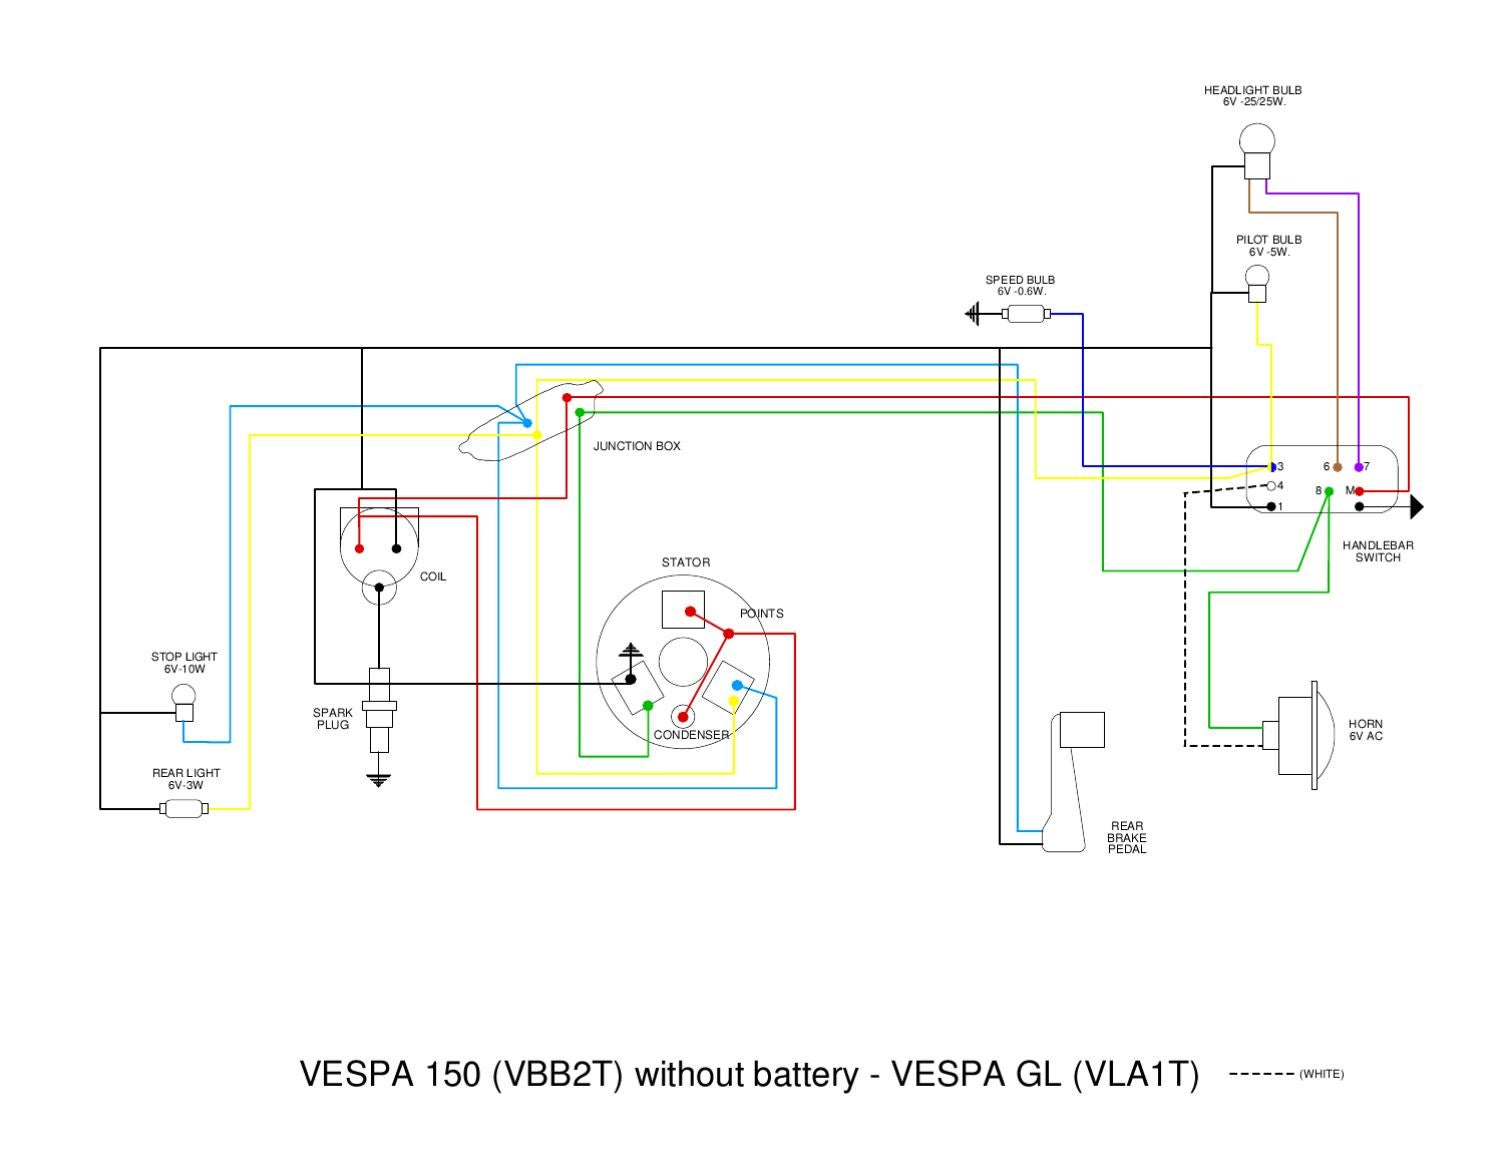 vespa battery fuse box diagram above the battery fuse box vespa vb wiring diagram by et3px et3px - issuu #13